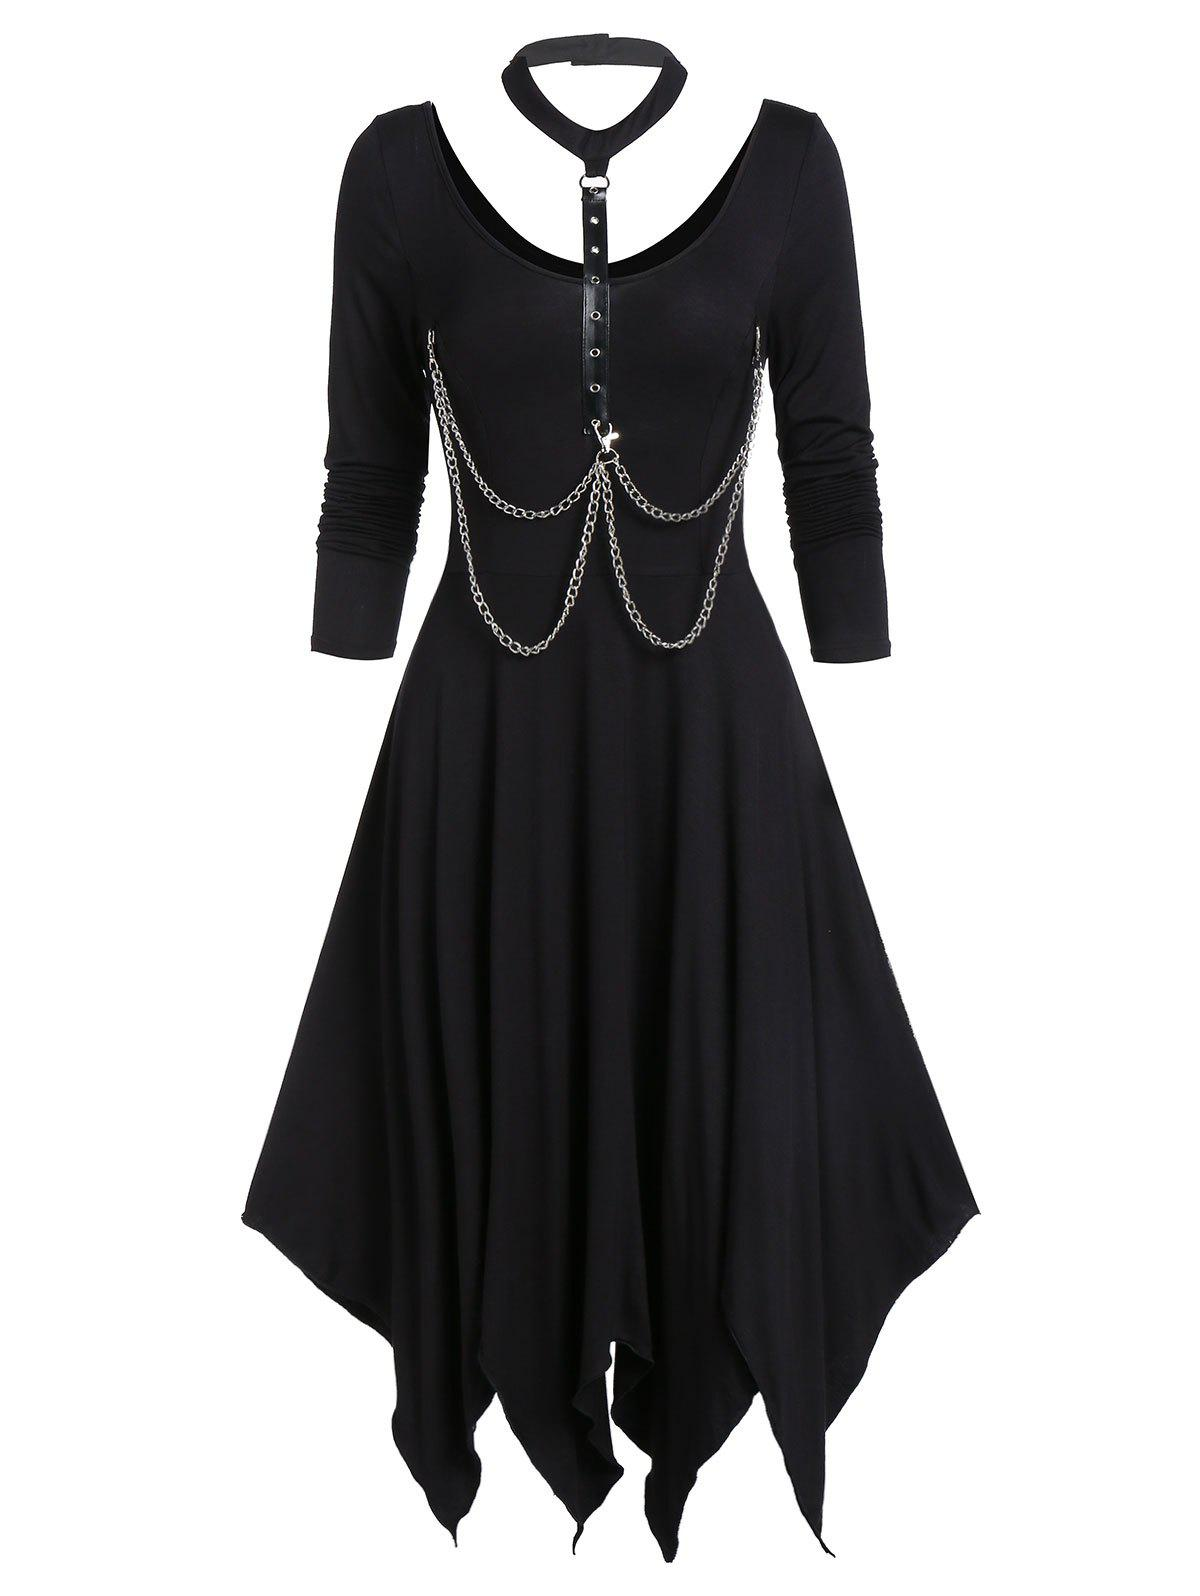 Unique Asymmetrical Choker Chains Long Sleeve Dress